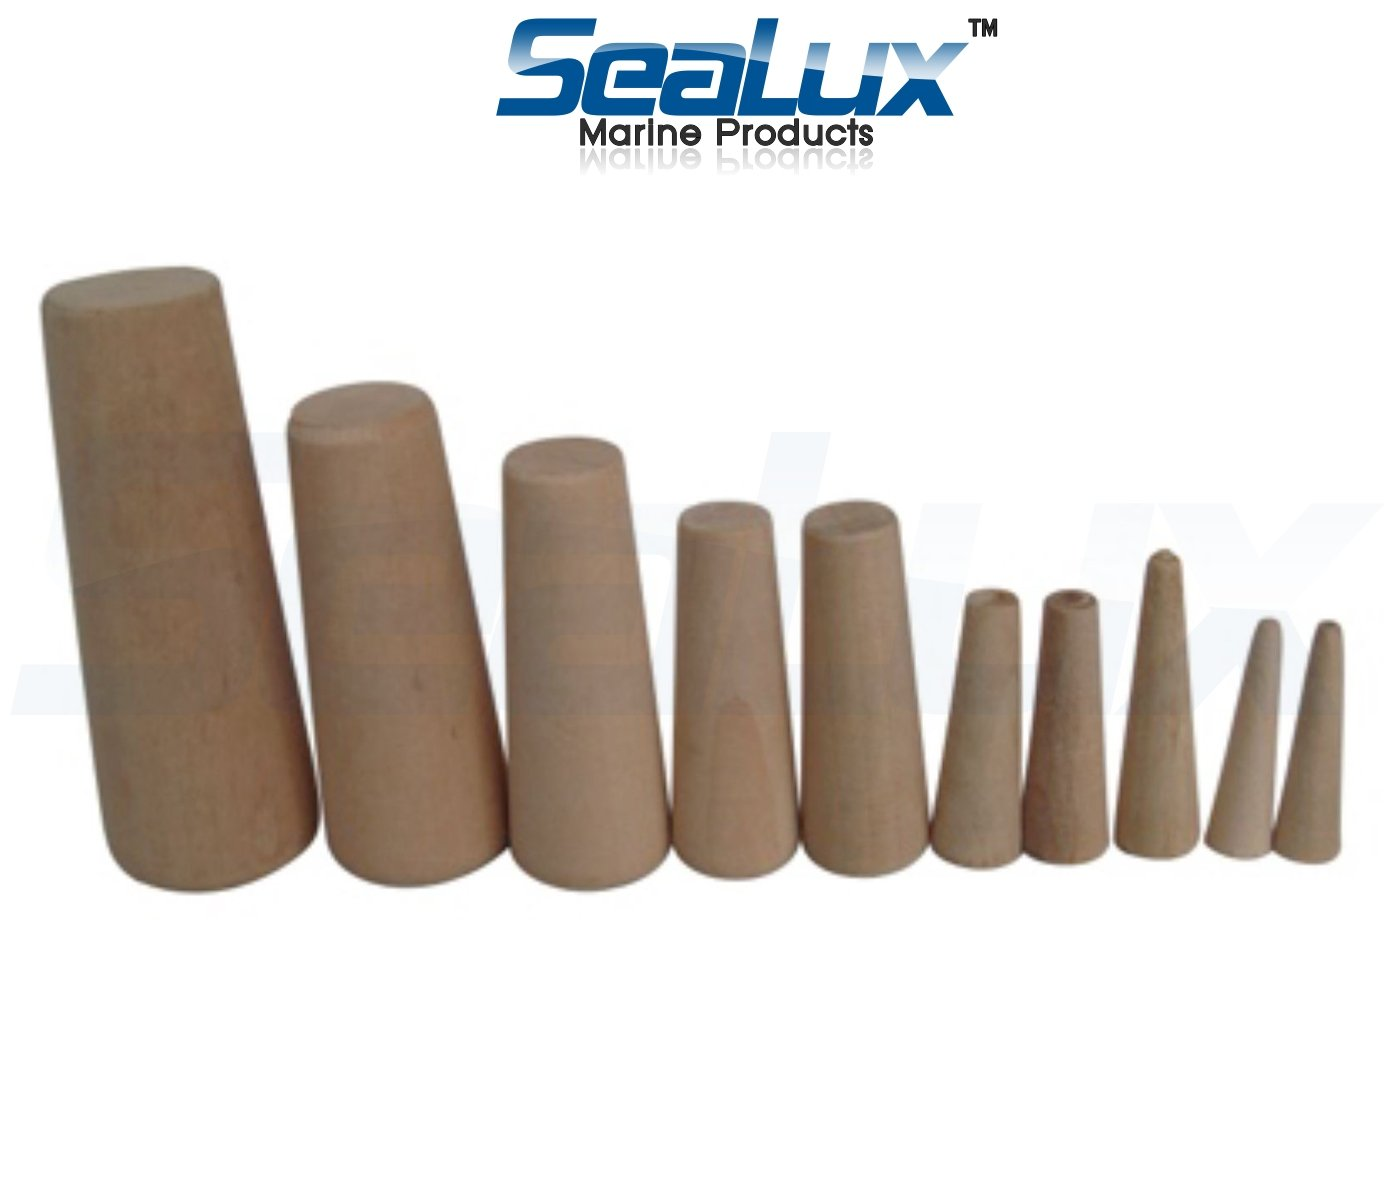 SeaLux Marine Tapered Conical Thru-hull Emergency soft Wood Plugs Set of 10 for small hull